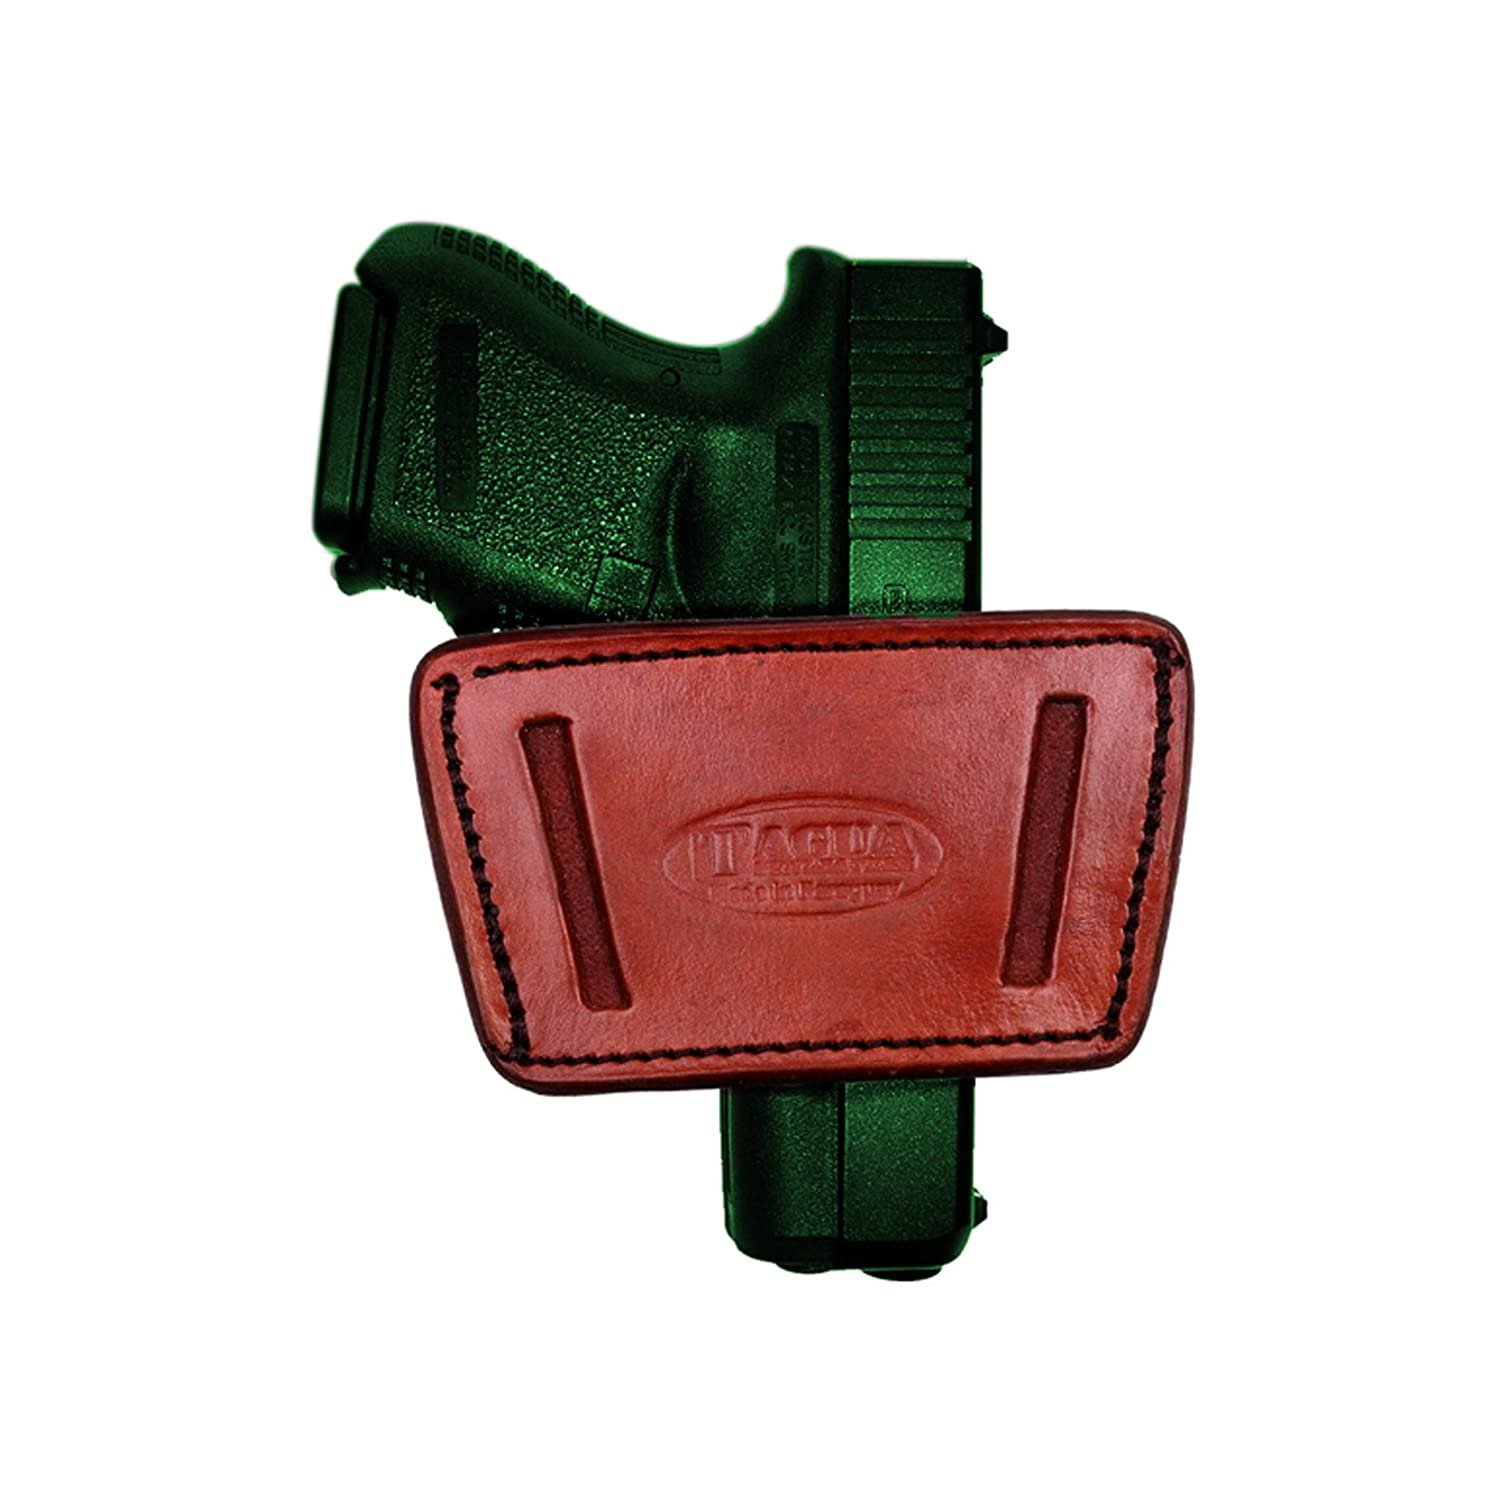 Tagua Gunleather IWH Leather Inside The Waist Tactical Holster